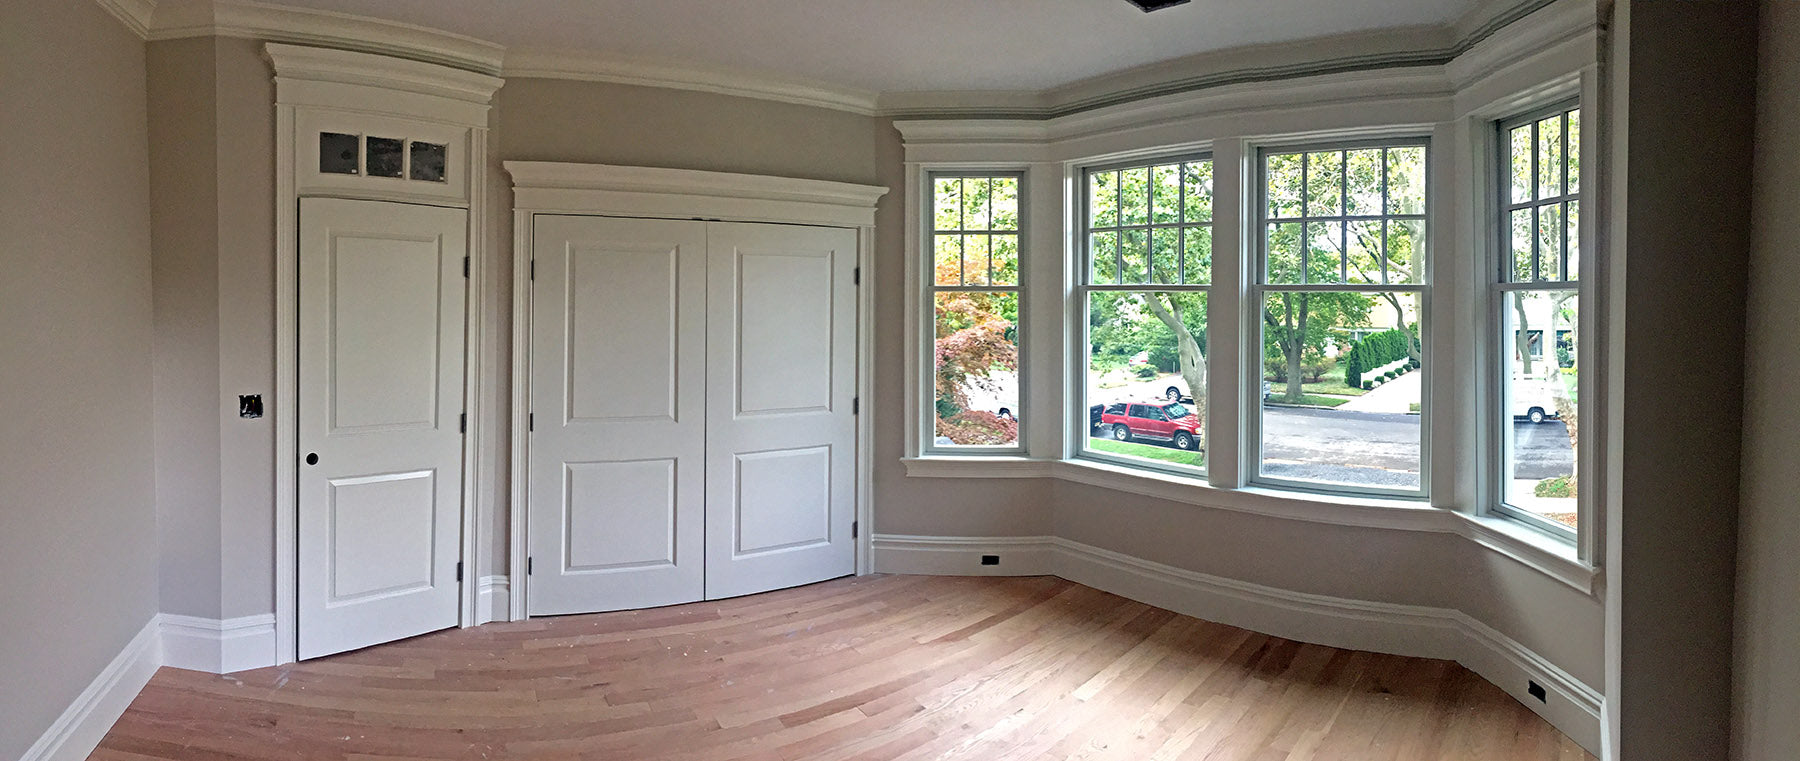 Sea Girt Bedroom Trim